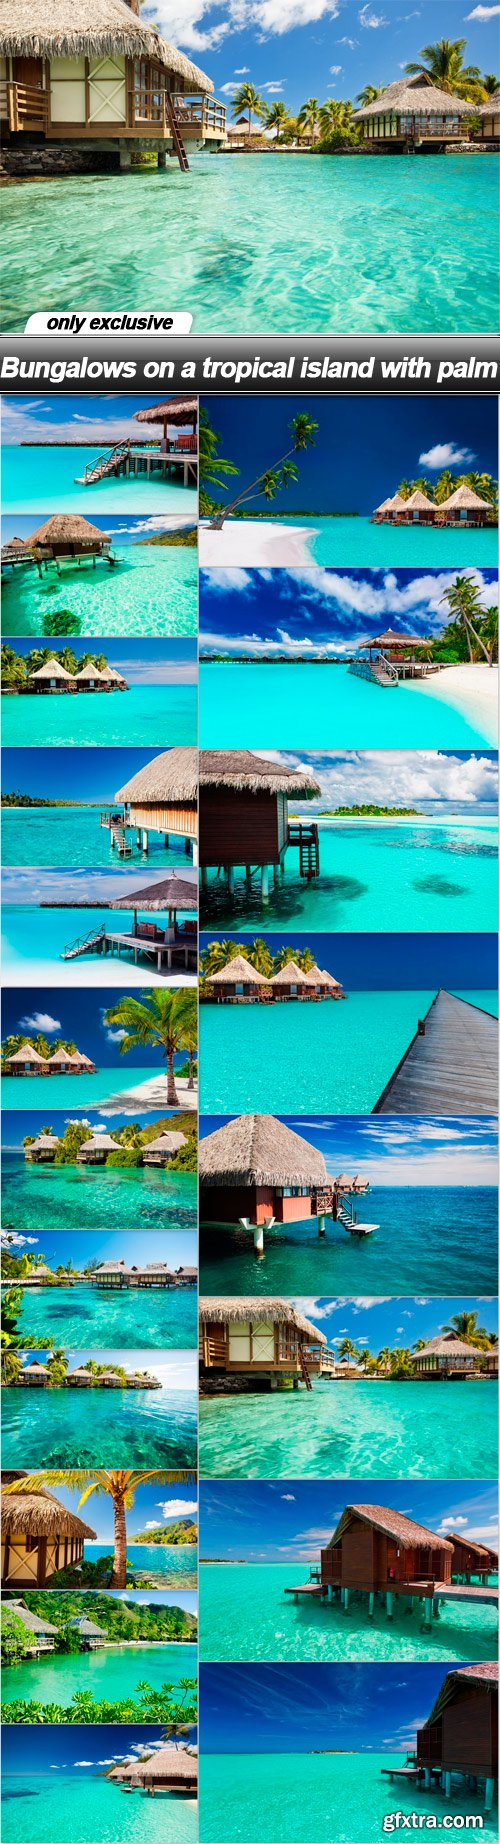 Bungalows on a tropical island with palm - 20 UHQ JPEG